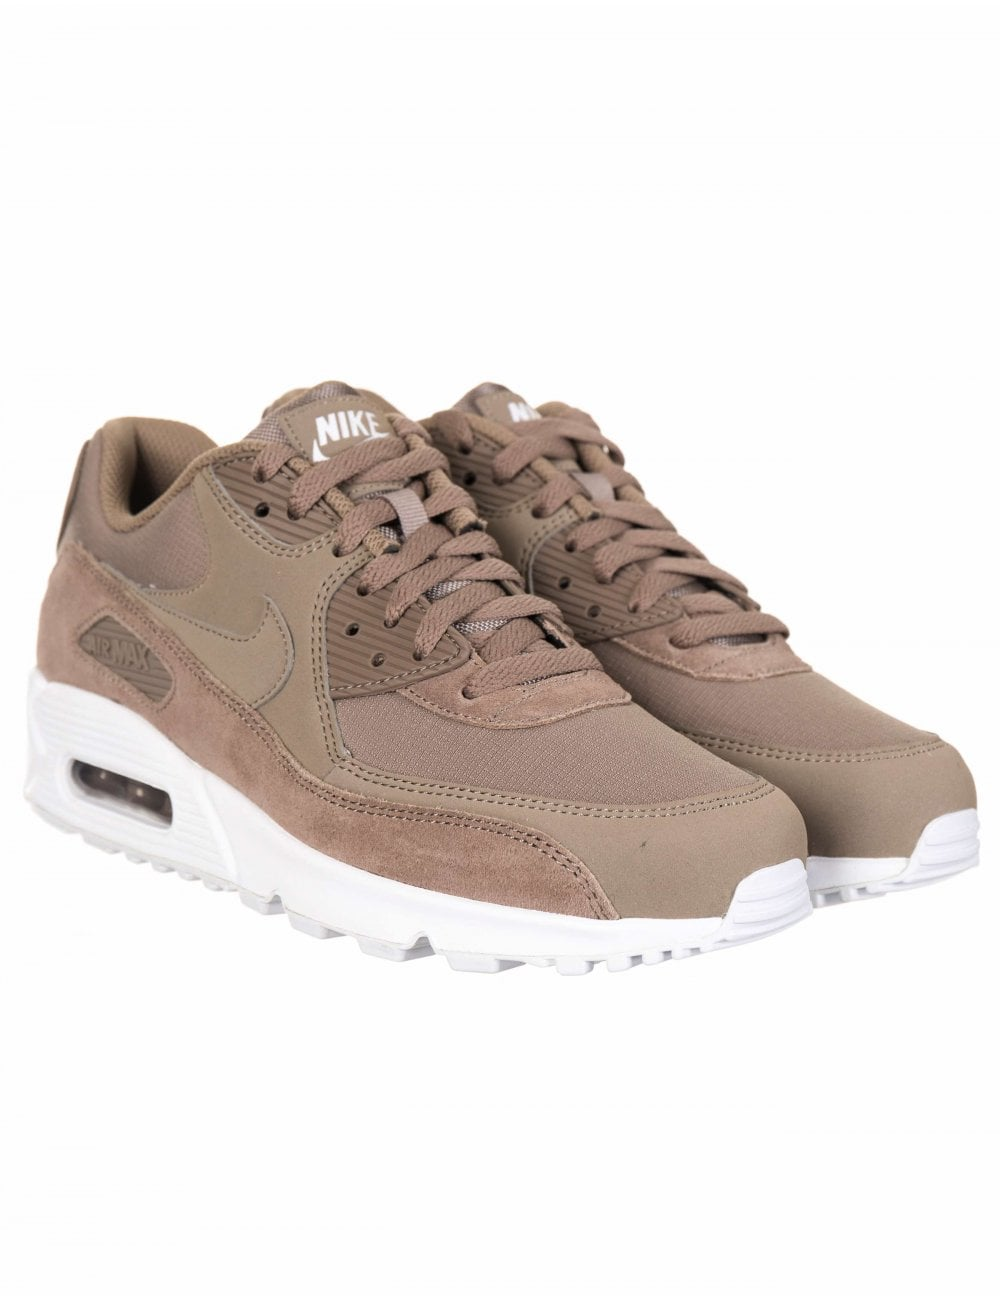 reputable site aed13 ca80b Air Max 90 Essential Trainers - Sepia Stone